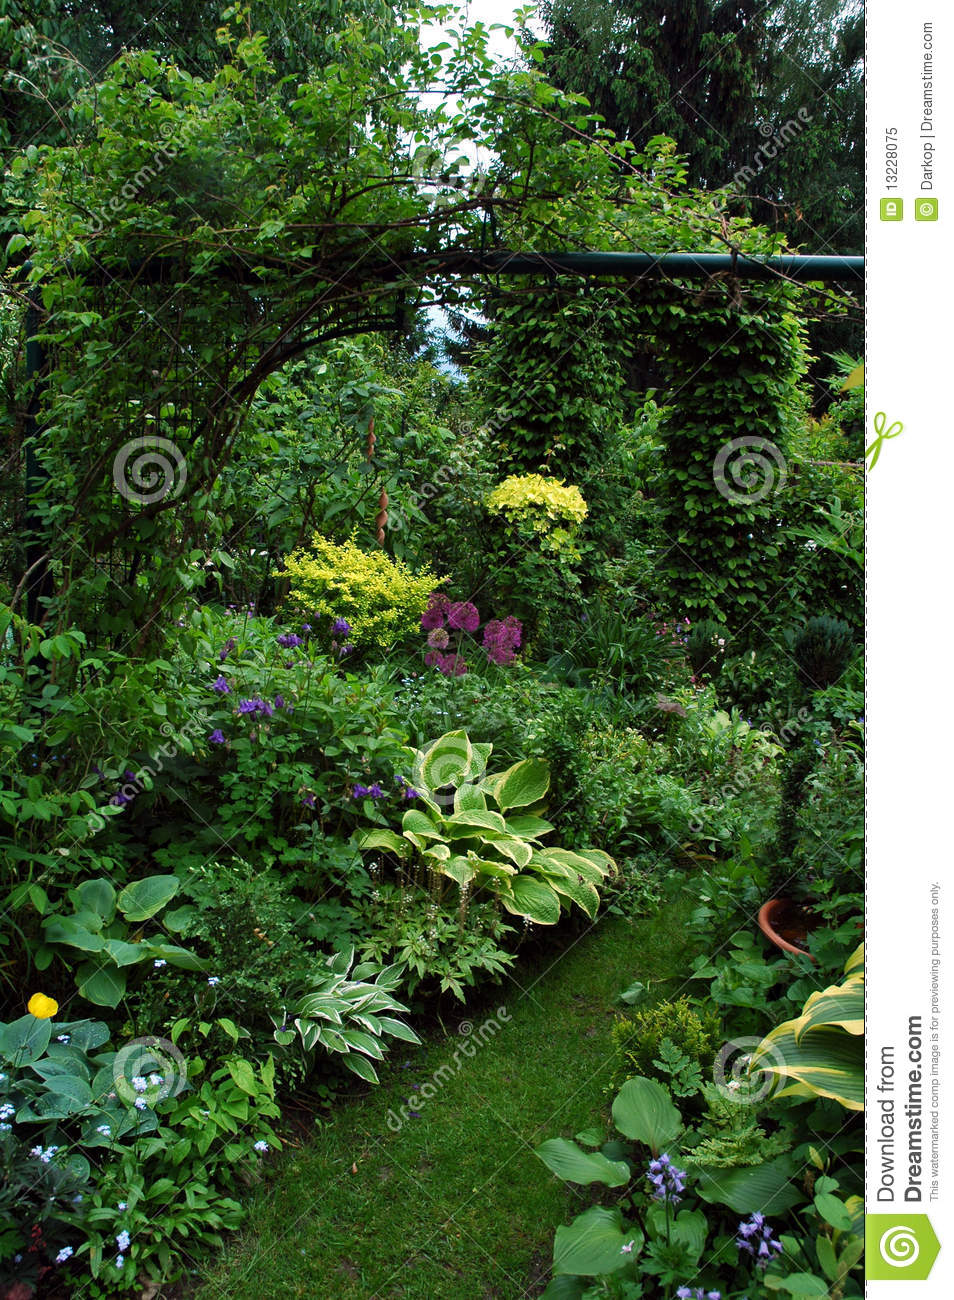 Gardening Group: Group Plants In The Shadow Garden Place Royalty Free Stock